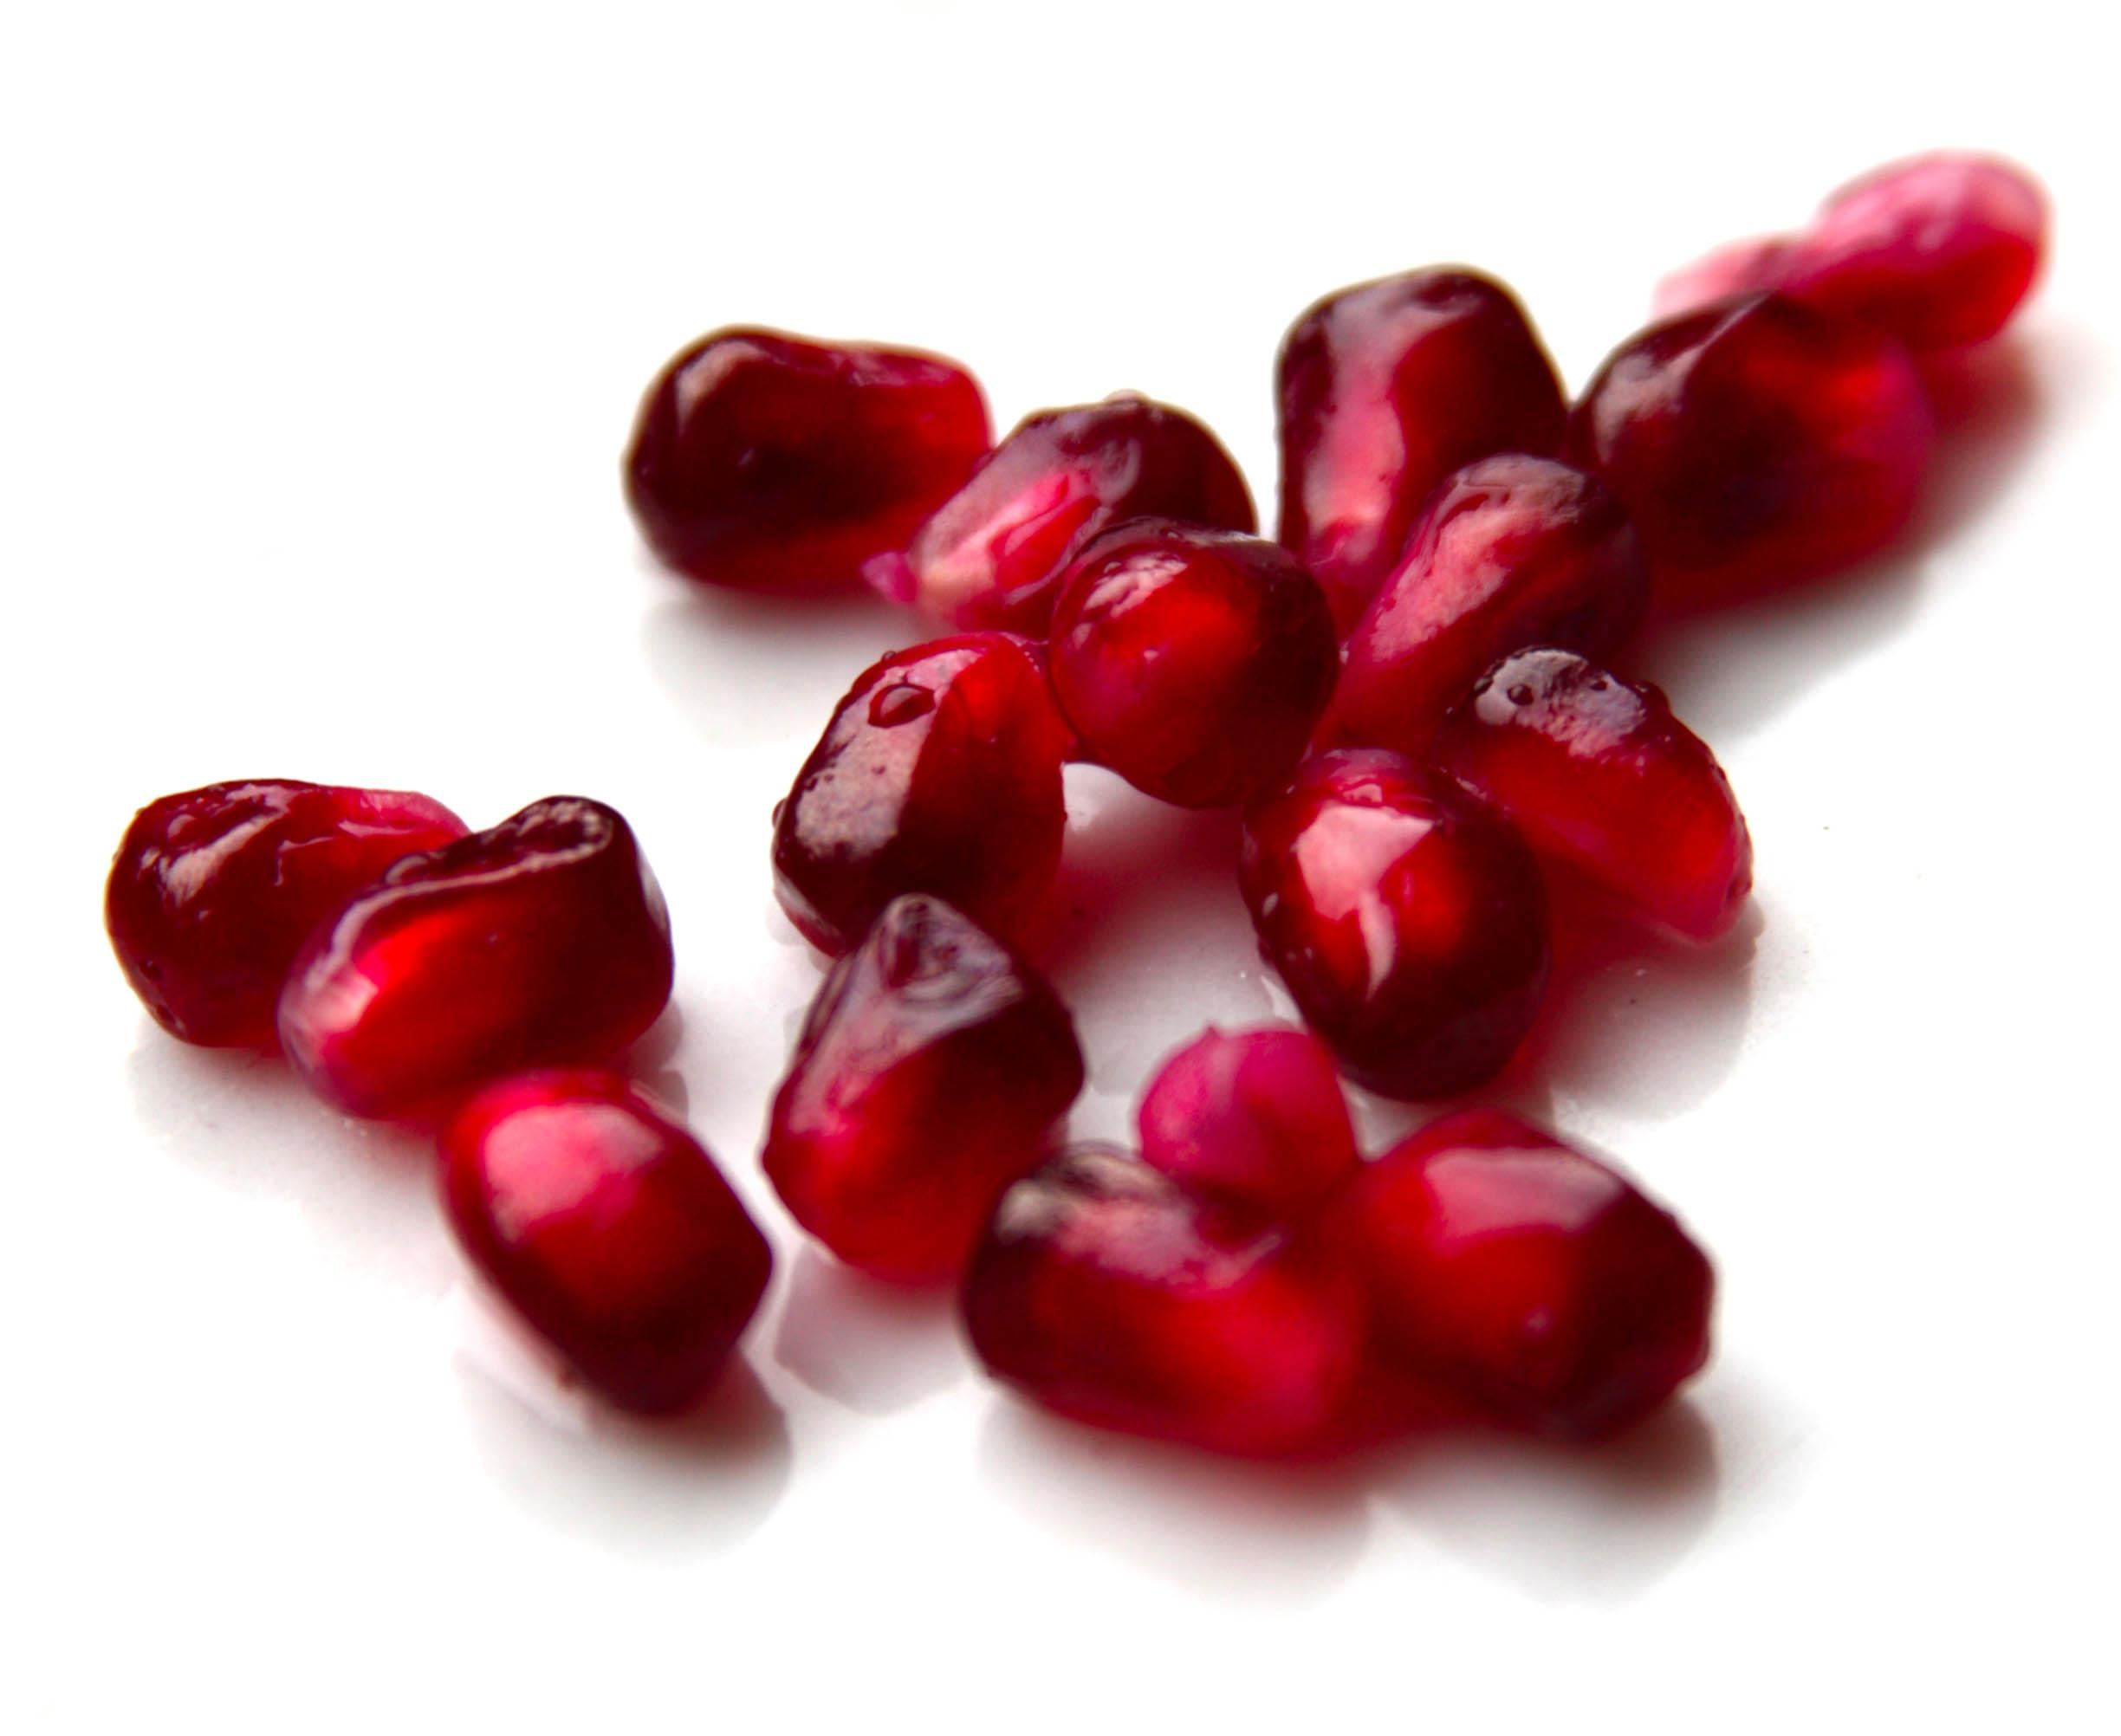 closeup of pomegranate arils to illustrate the benefits of pomegranate